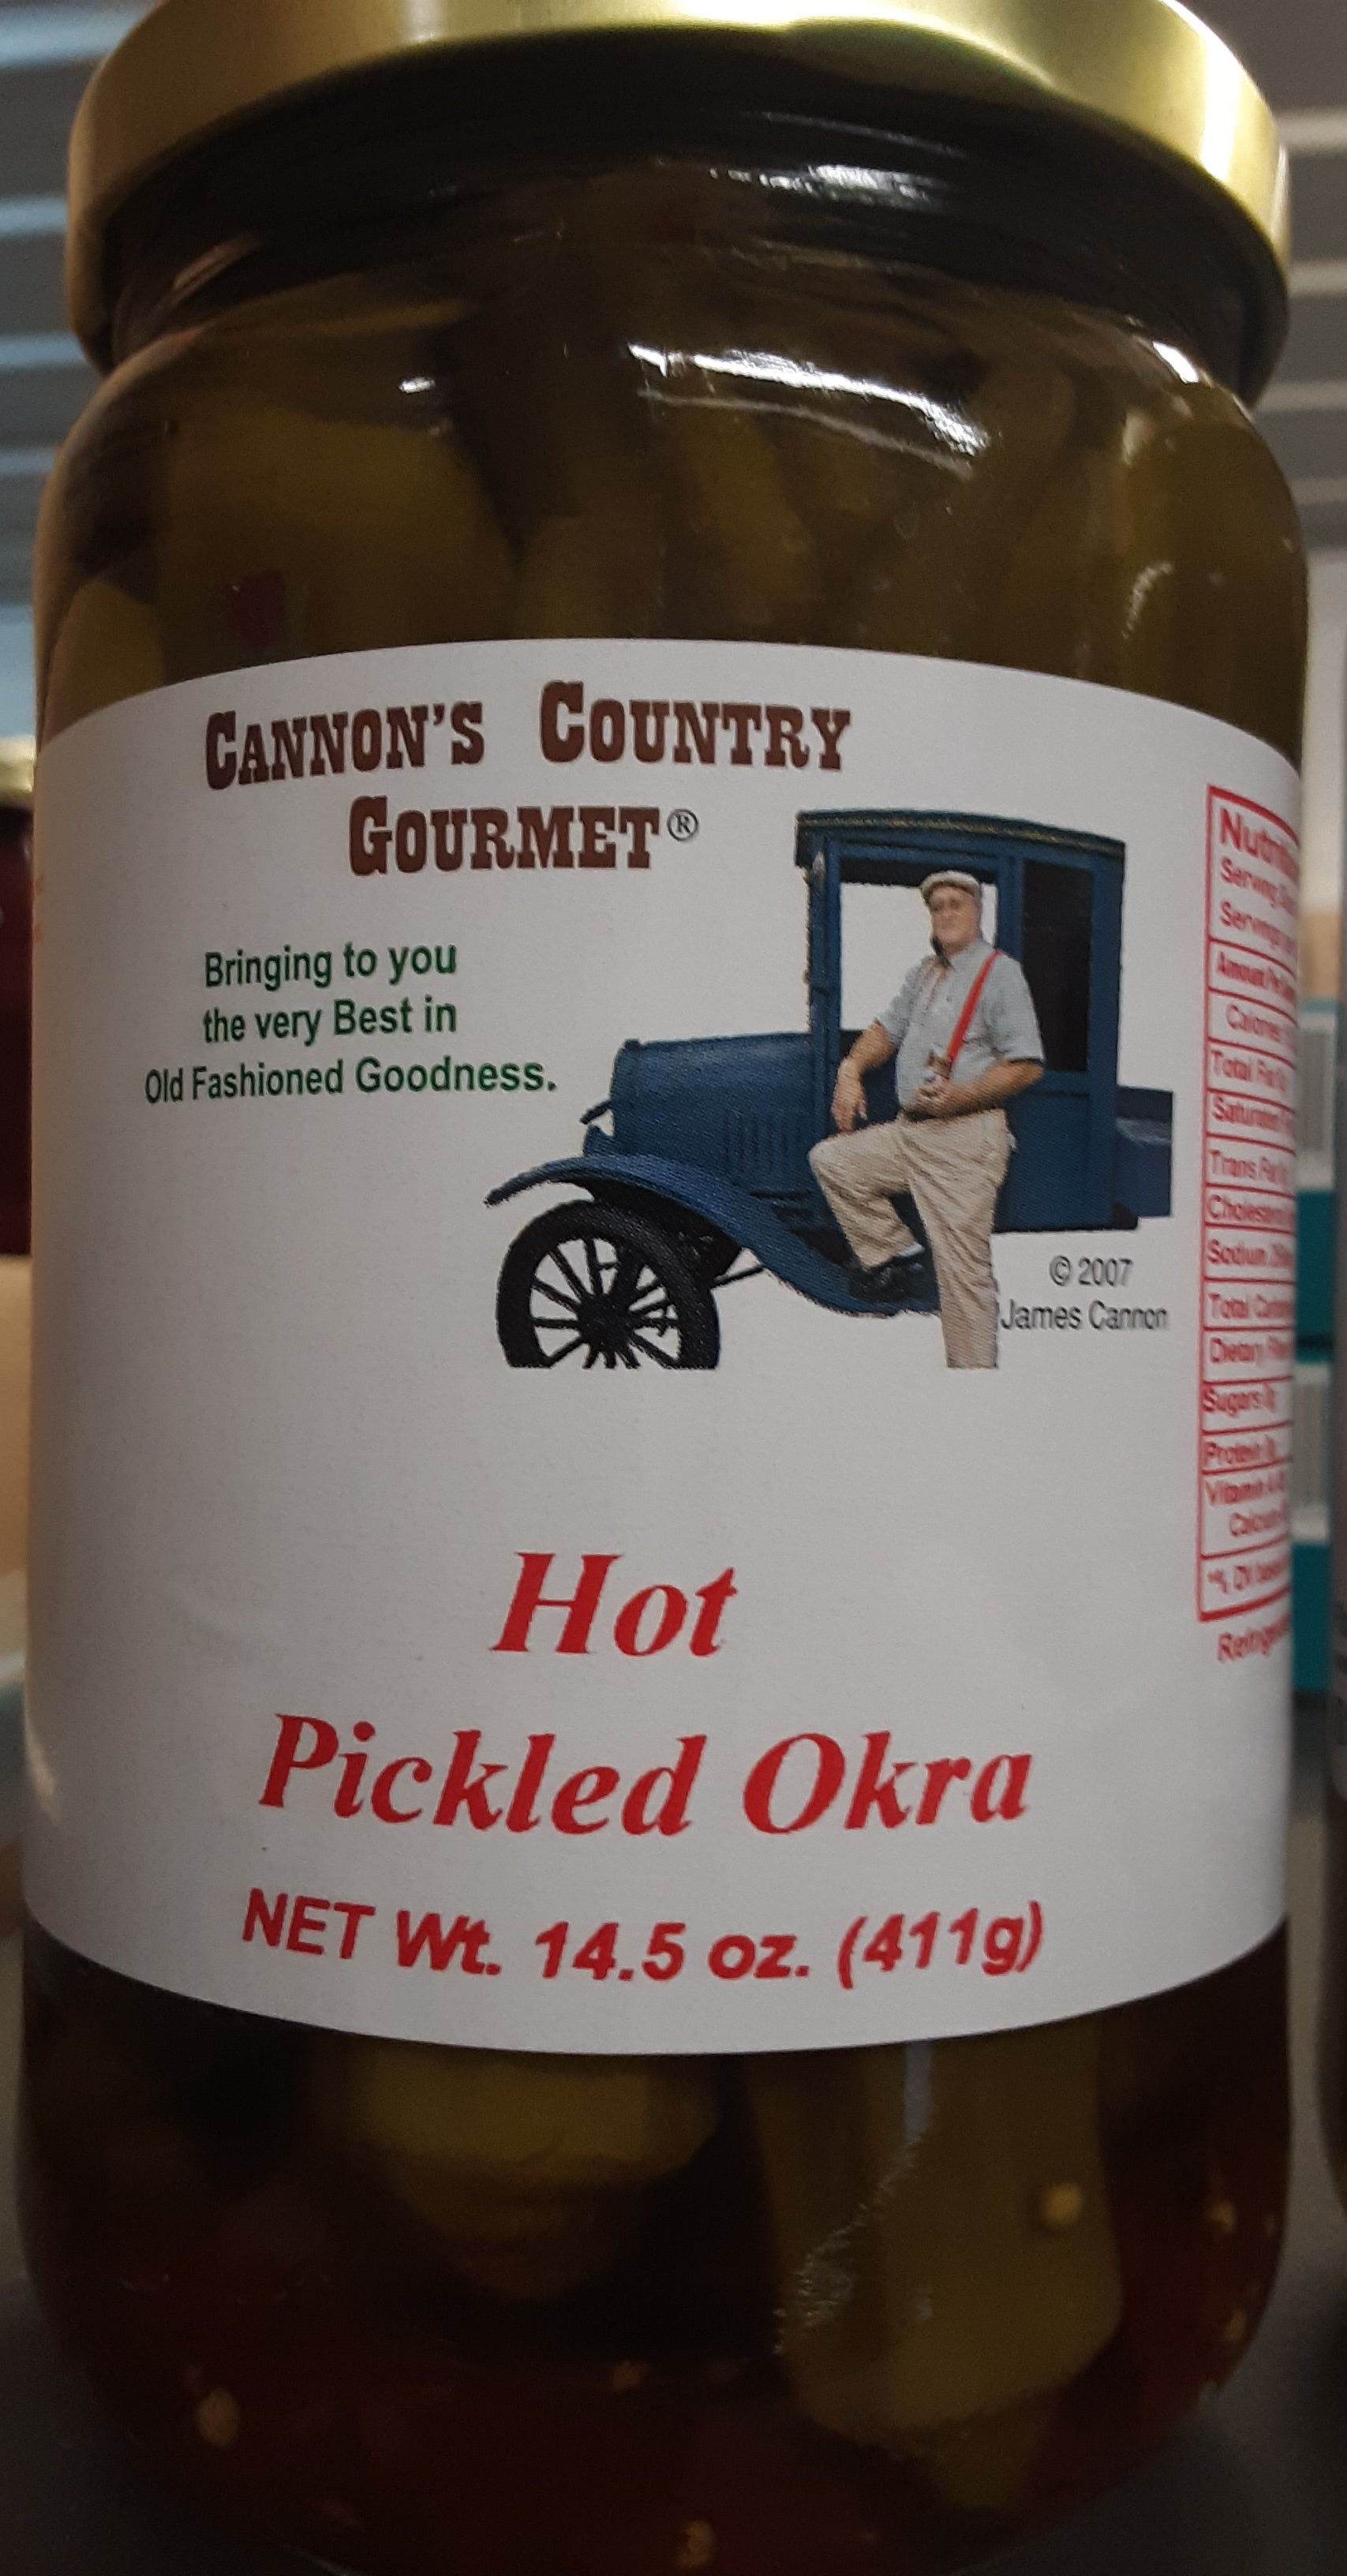 Pickled Okra - Hot - Cannon's Country Gourmet